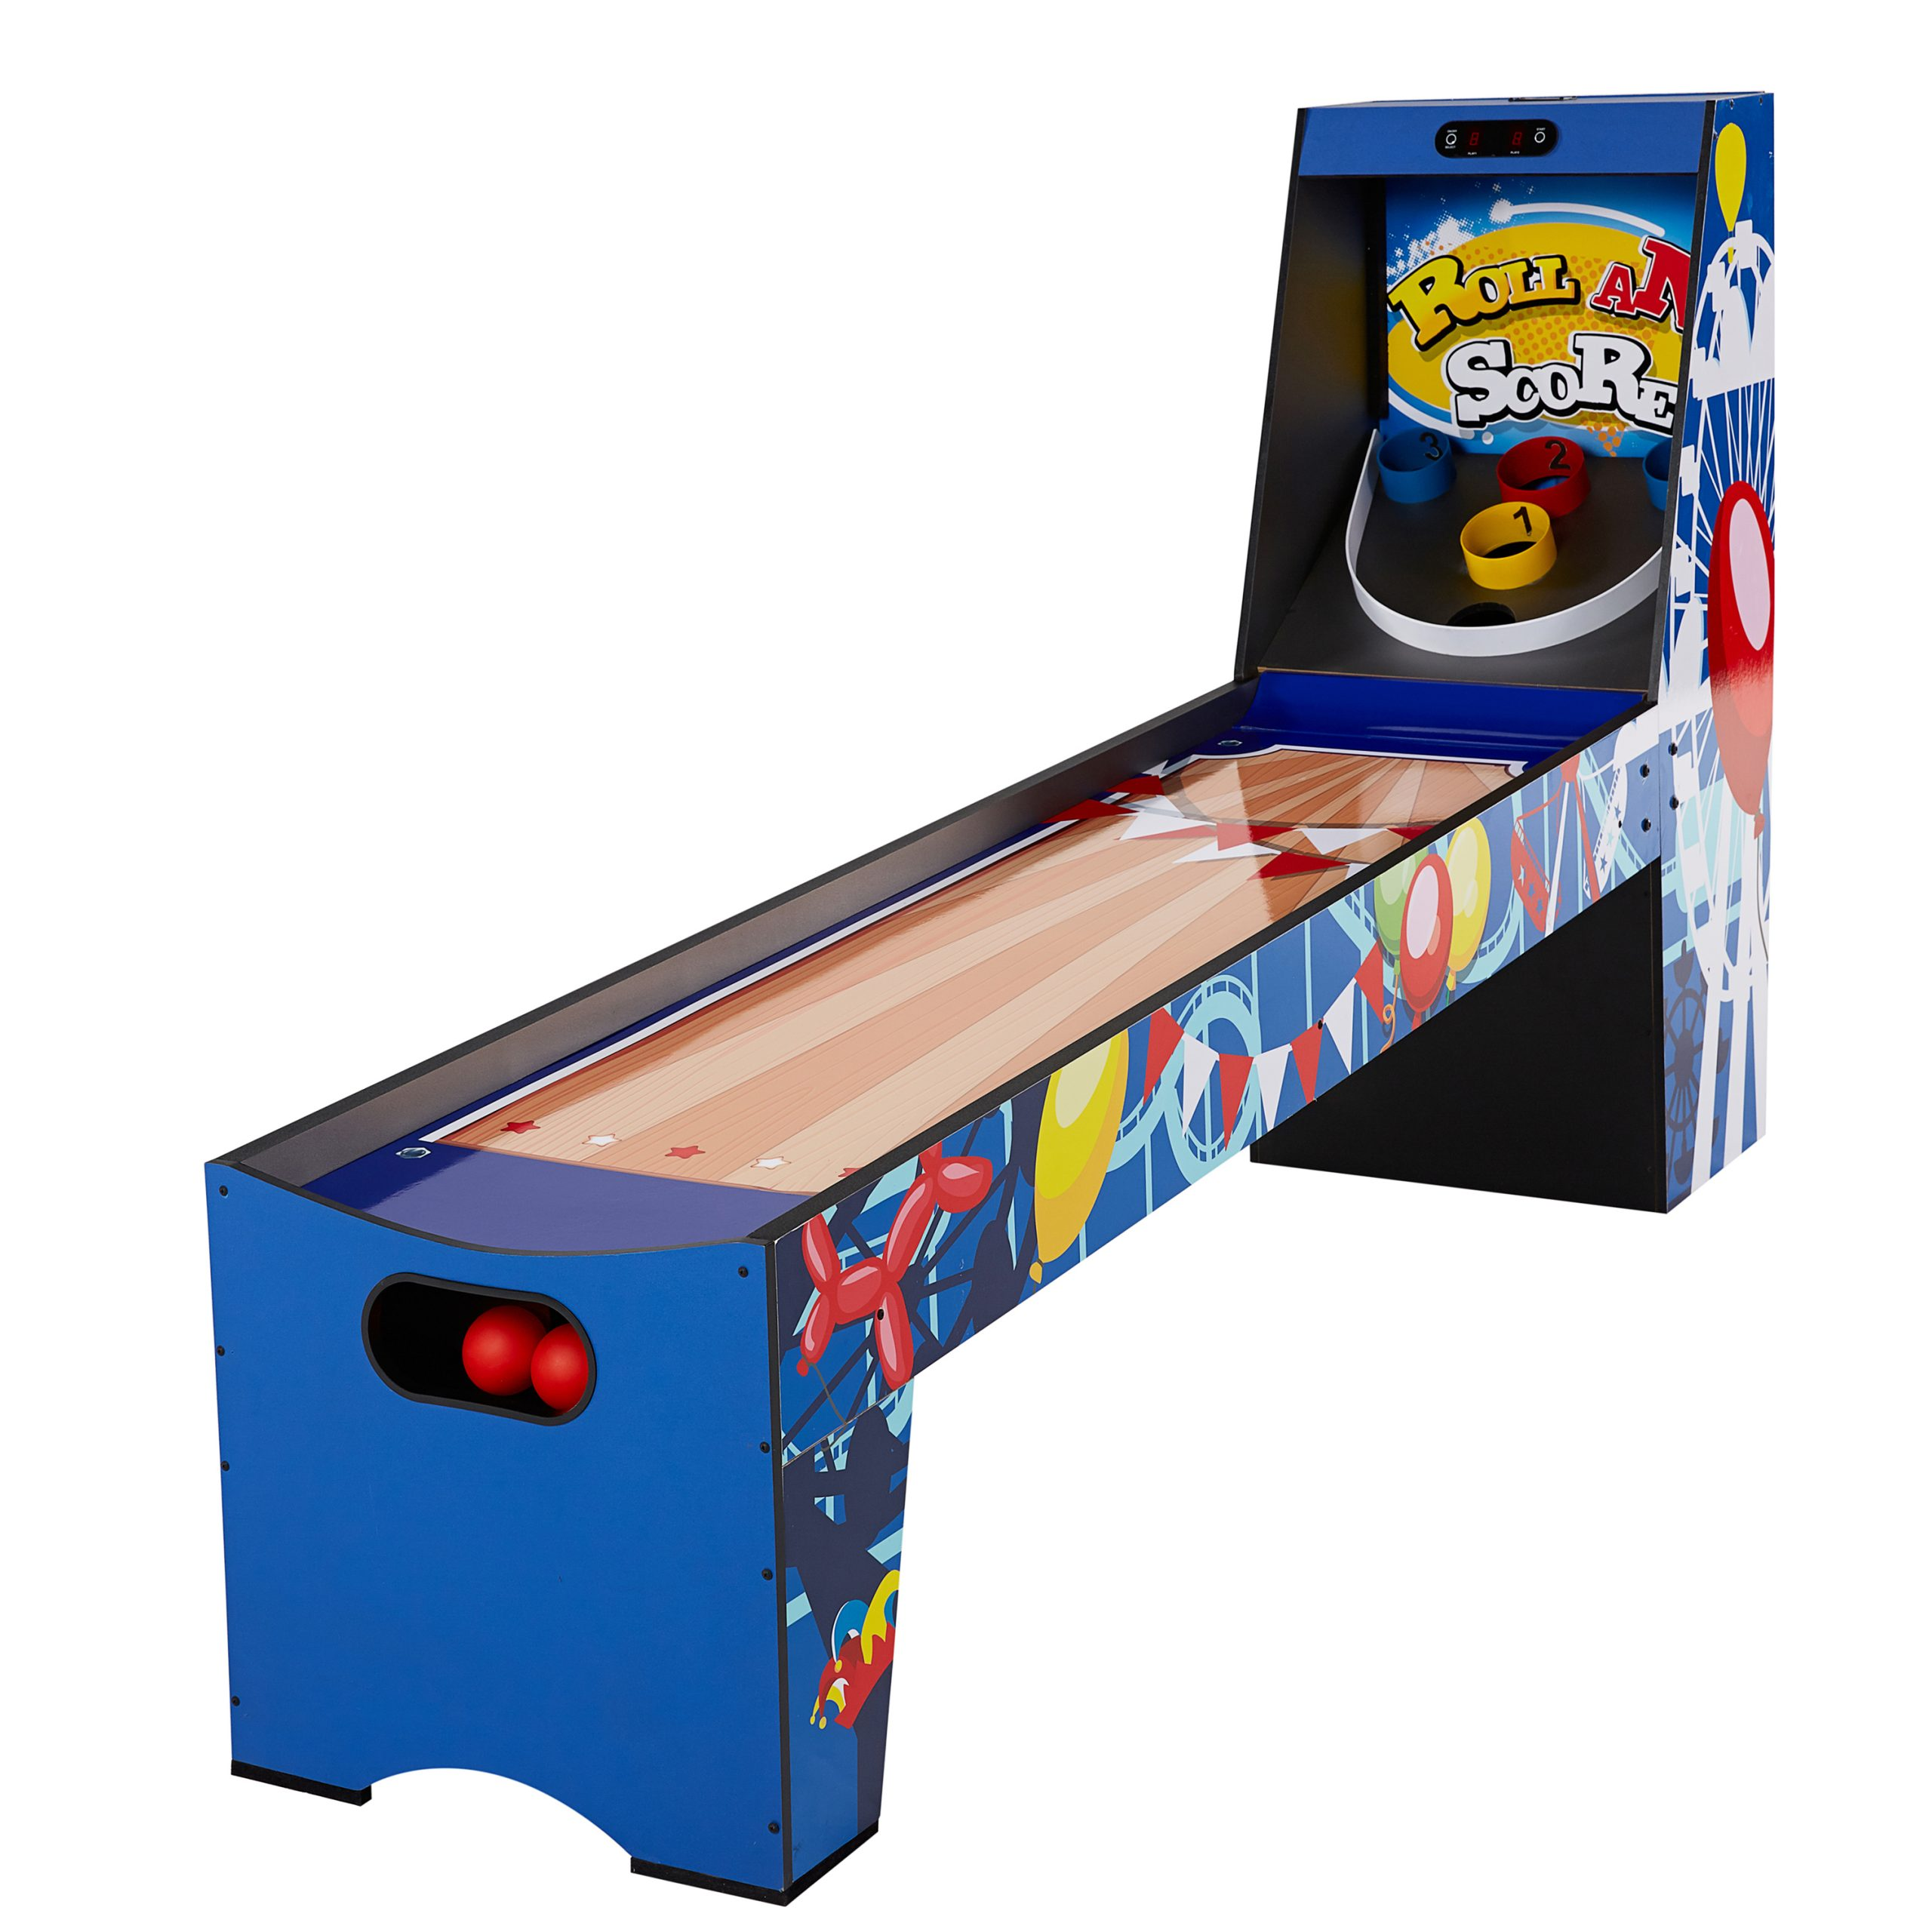 Roll and Score skee ball